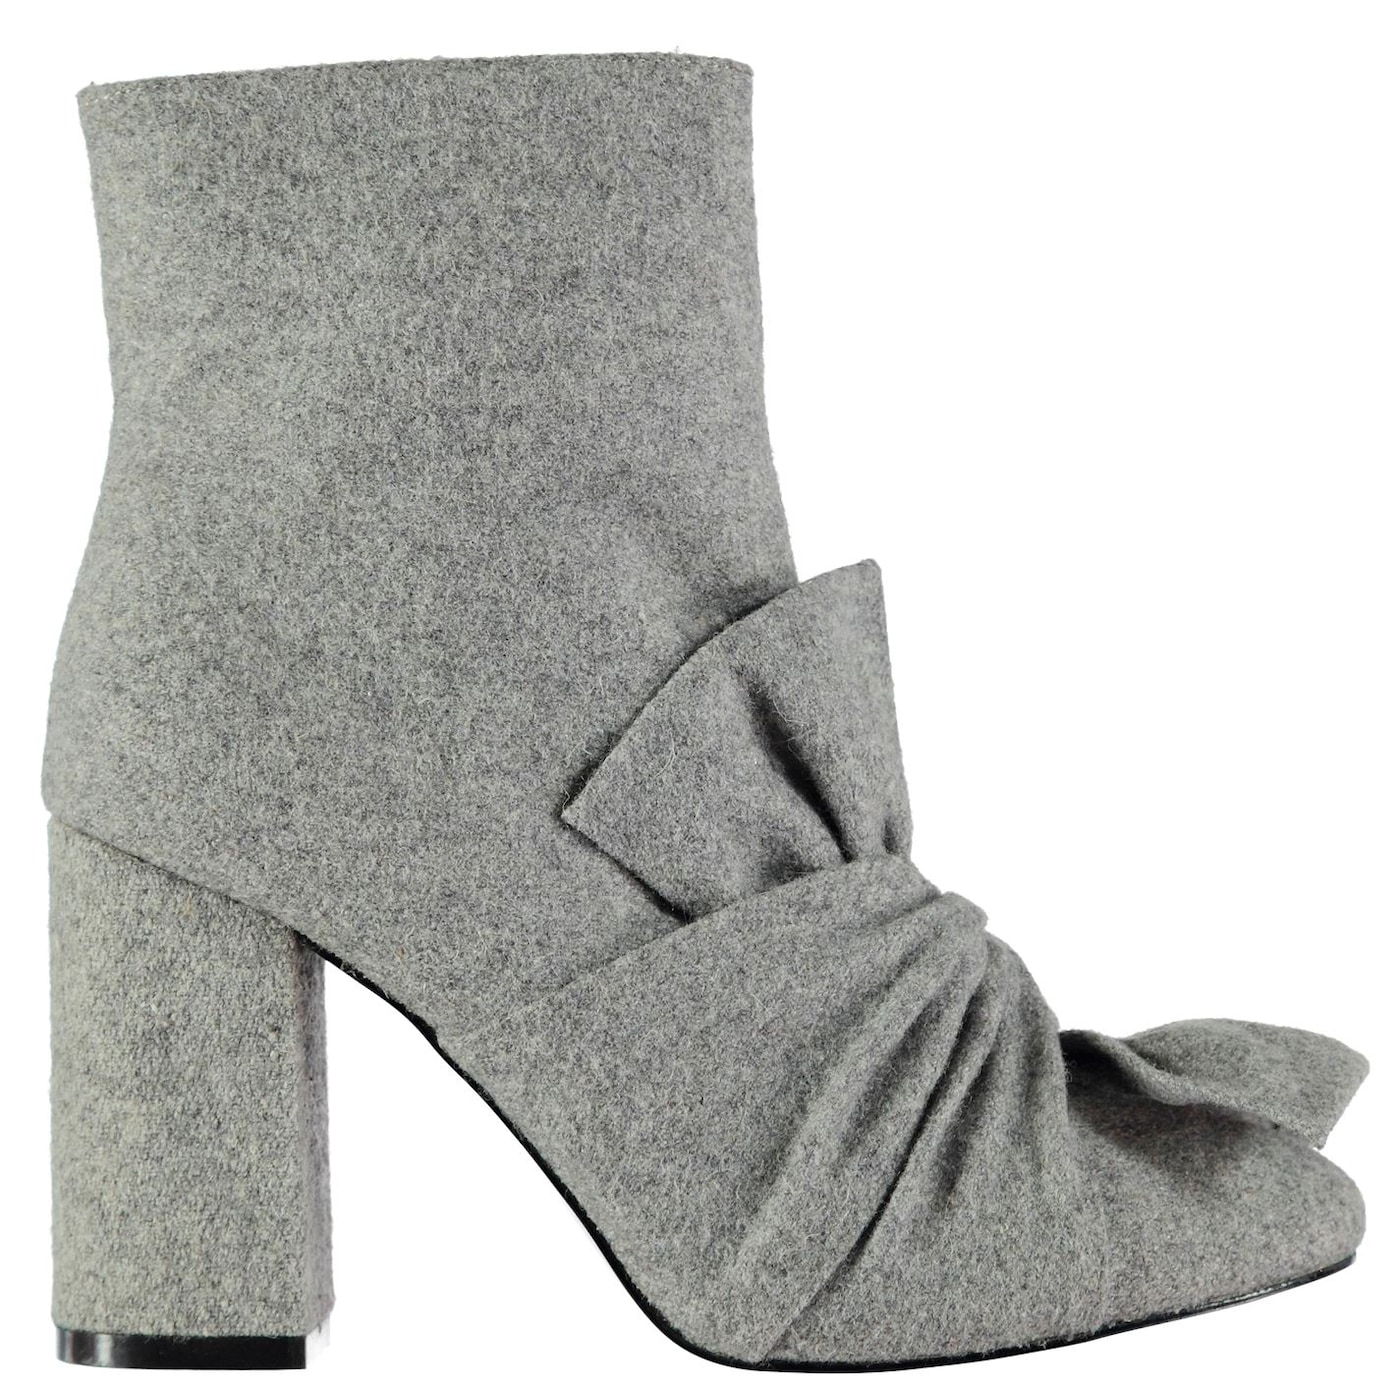 Glamorous Knot Boots